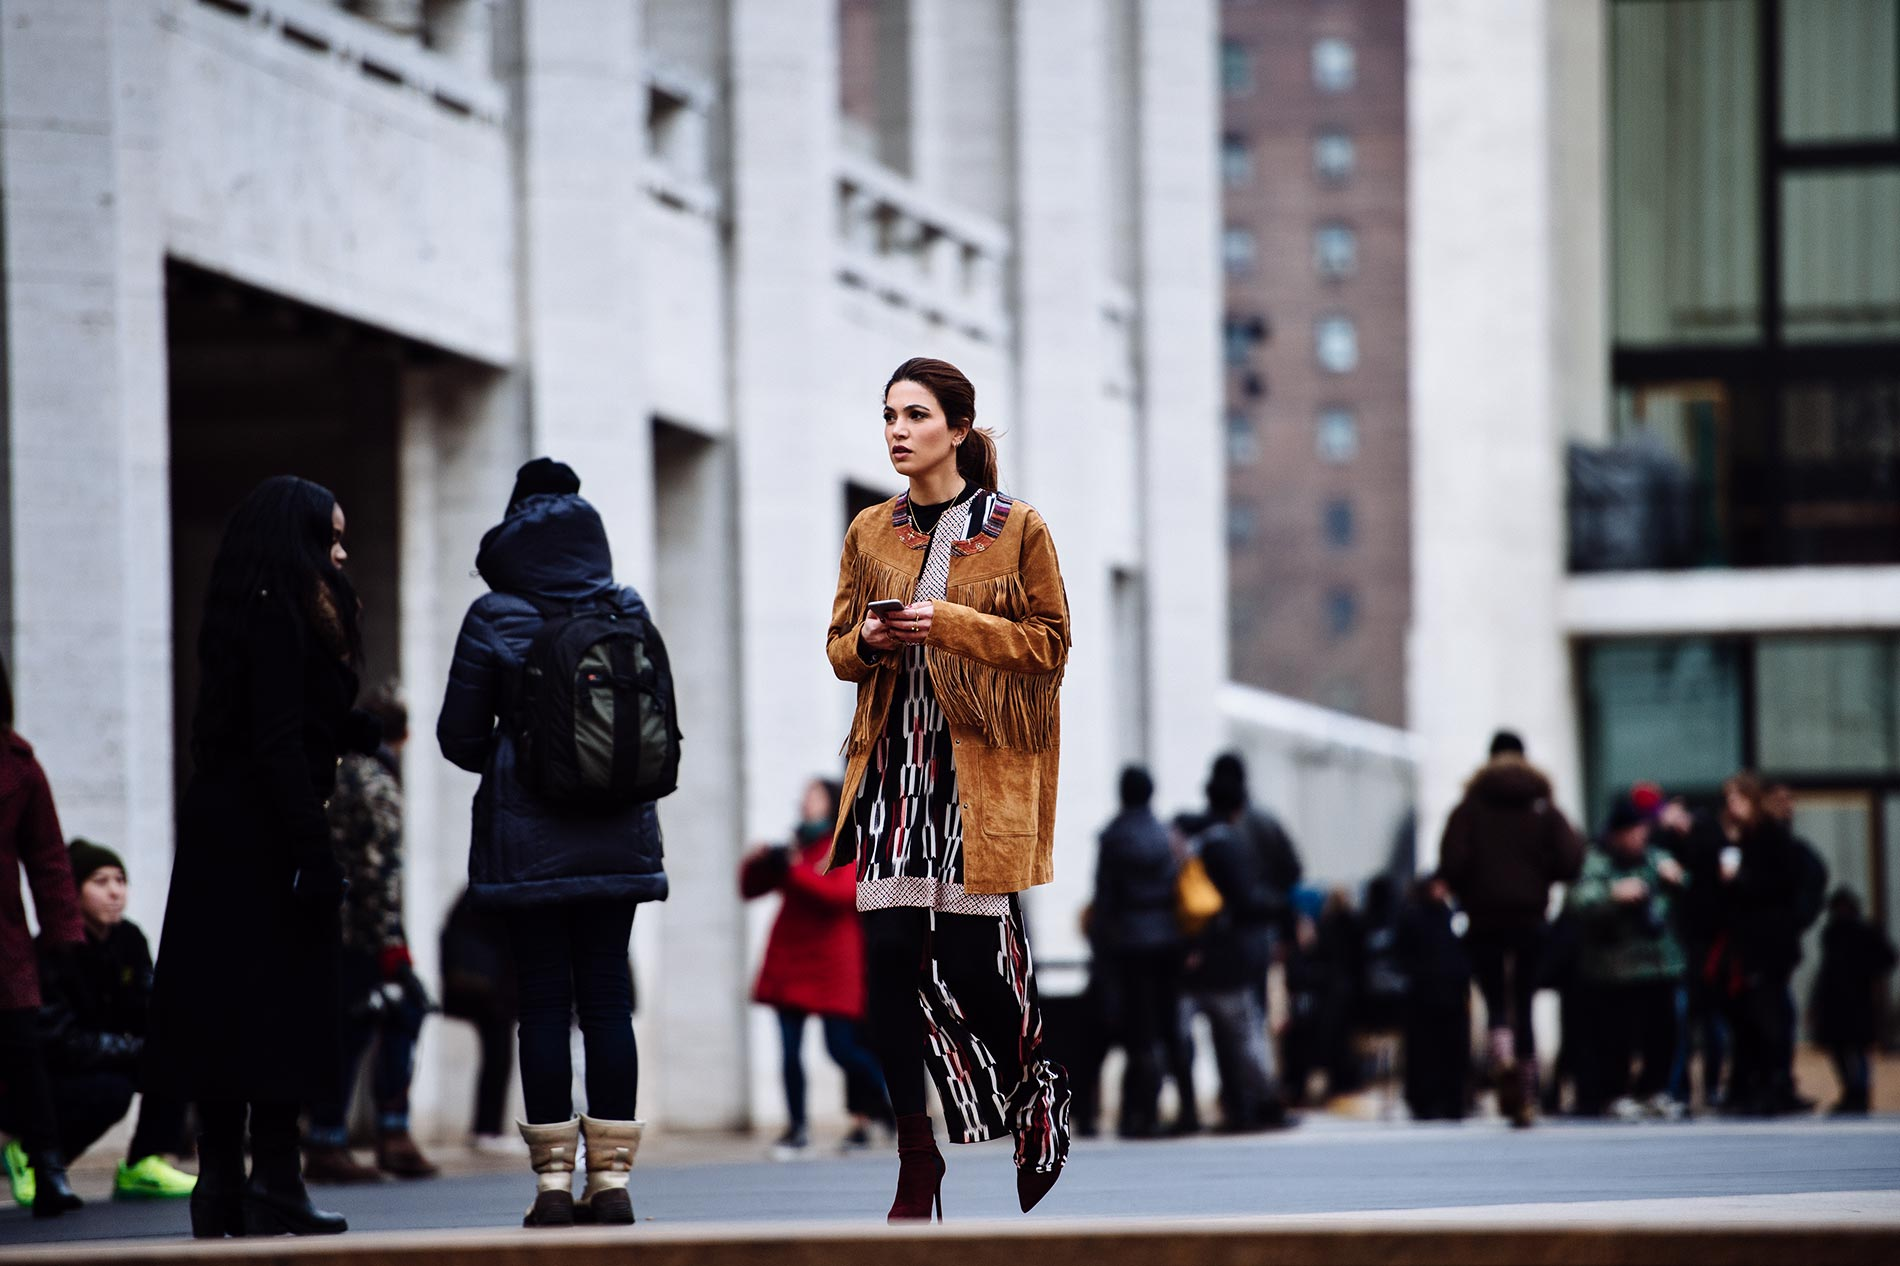 Negin Mirsalehi @ NYFW F/W15 - New York, February 2015